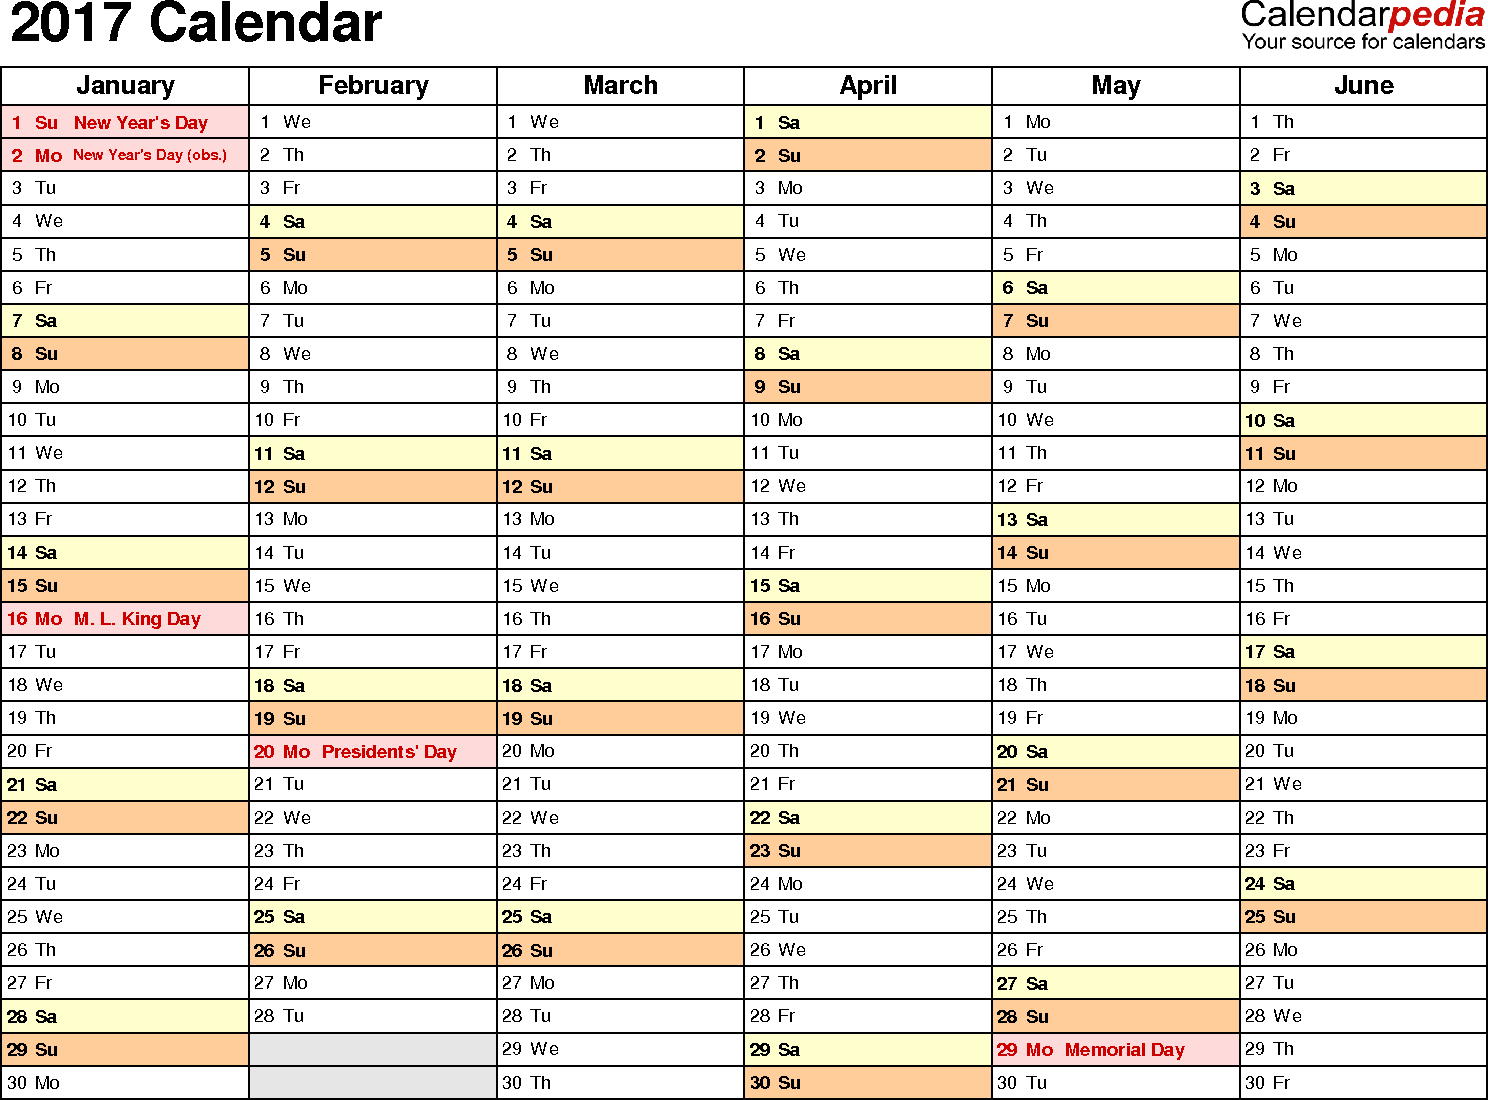 Ediblewildsus  Prepossessing  Calendar  Download  Free Printable Excel Templates Xls With Foxy Template   Calendar For Excel Months Horizontally  Pages Landscape Orientation With Easy On The Eye How To Freeze More Than One Row In Excel Also How To Insert A Title In Excel In Addition Statistical Functions In Excel And Locking Columns In Excel As Well As Excel Dental Ozark Mo Additionally Excel Reference Cell In Another Sheet From Calendarpediacom With Ediblewildsus  Foxy  Calendar  Download  Free Printable Excel Templates Xls With Easy On The Eye Template   Calendar For Excel Months Horizontally  Pages Landscape Orientation And Prepossessing How To Freeze More Than One Row In Excel Also How To Insert A Title In Excel In Addition Statistical Functions In Excel From Calendarpediacom